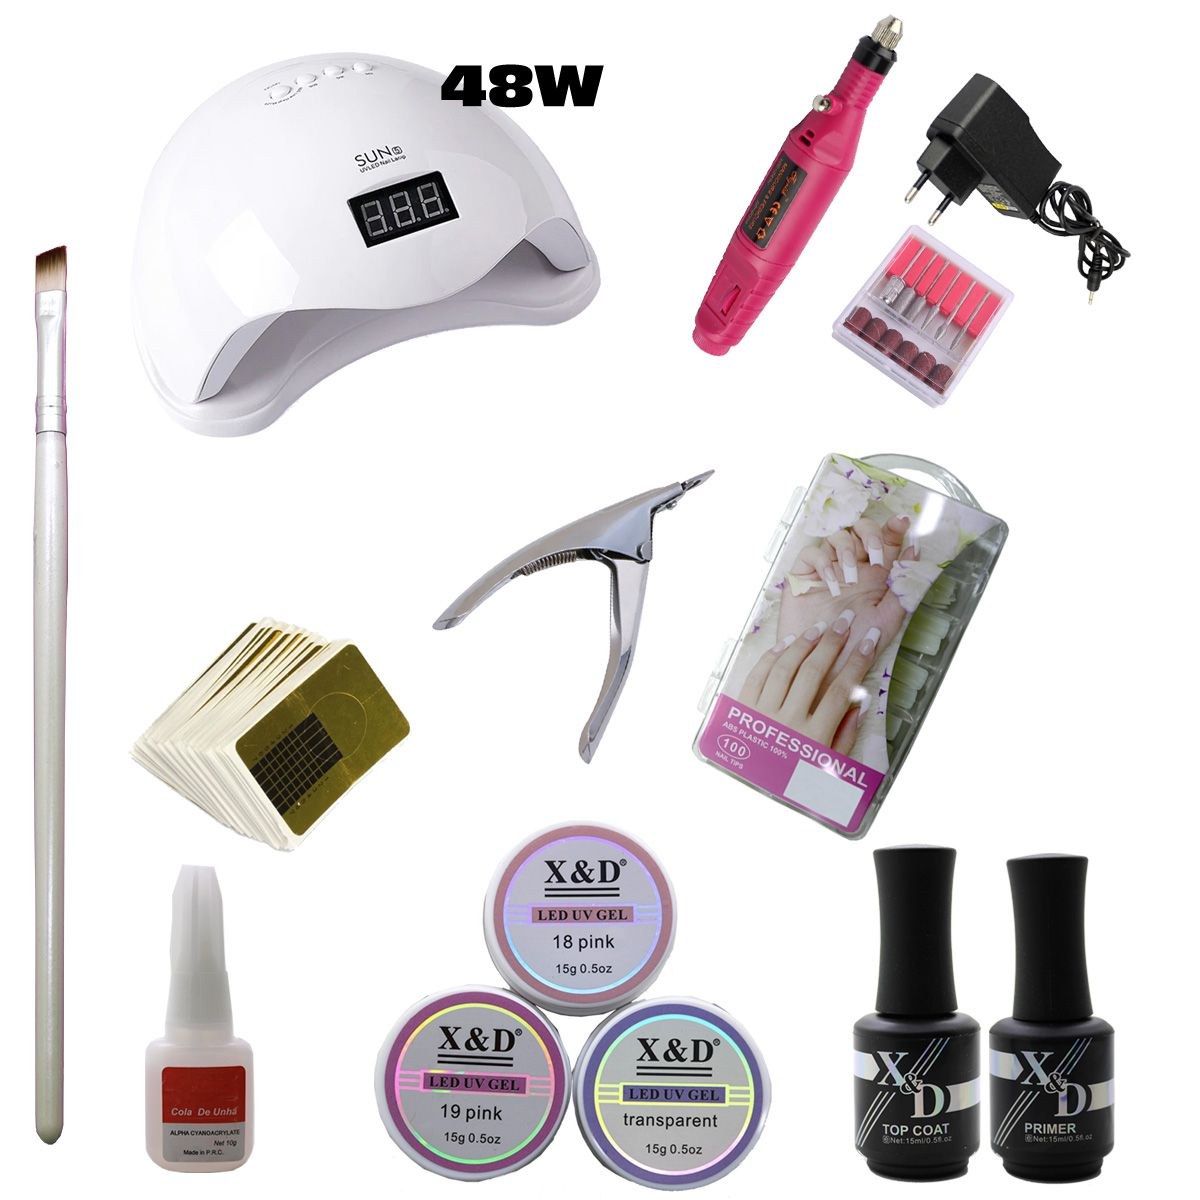 Kit Unha Gel Acrigel Led UV Sun 5 48W Top Coat Primer 597XDR